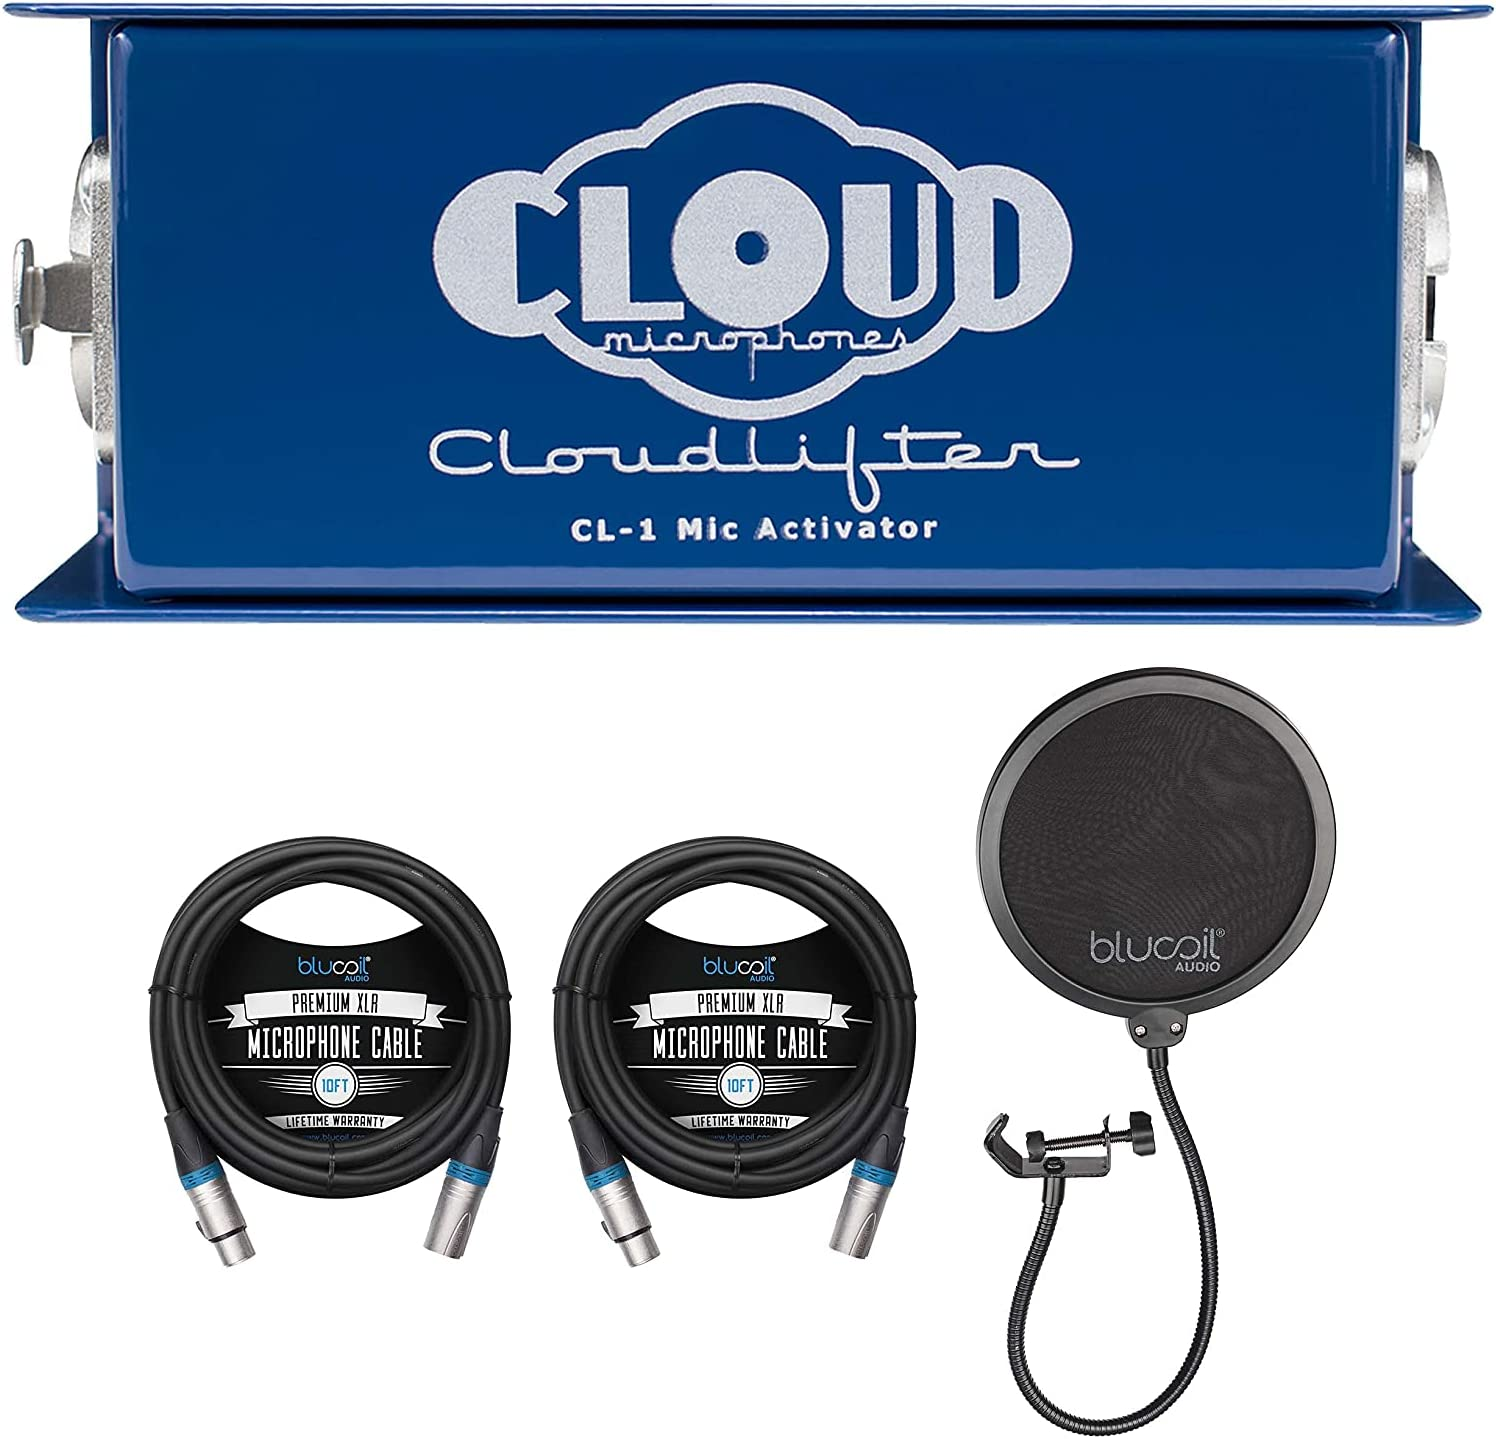 Cloud Microphones CL-1 Cloudlifter 1 Mic Max 48% OFF Activator Channel Popularity D for